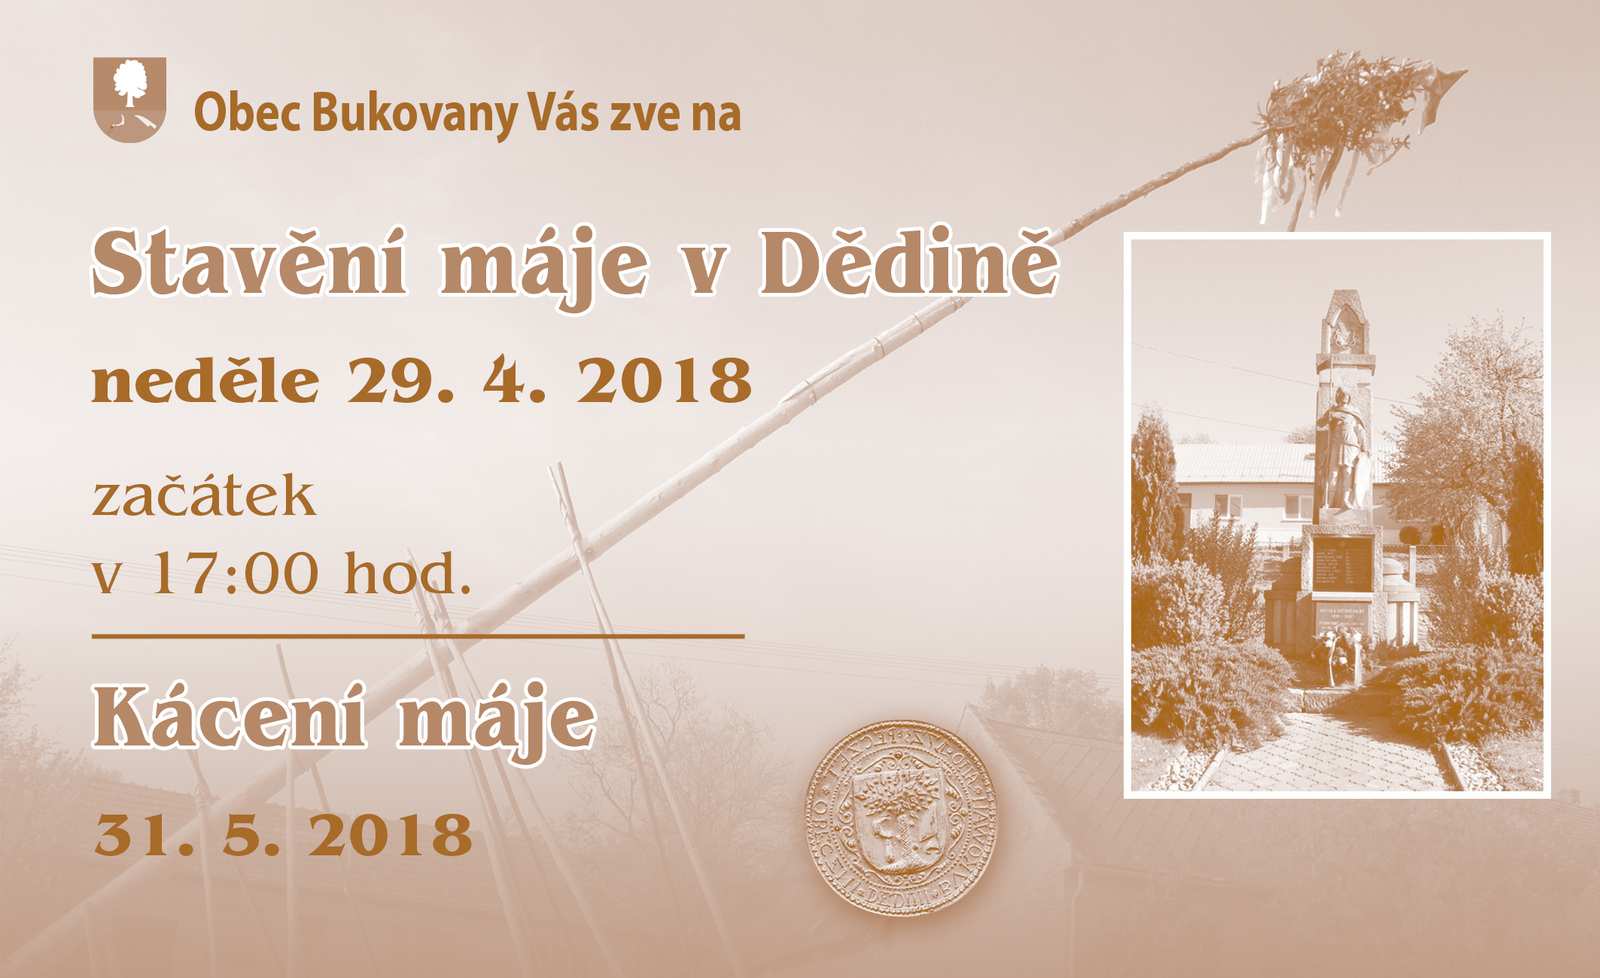 STAVENI_MAJE_2018-_DO_BL.jpg